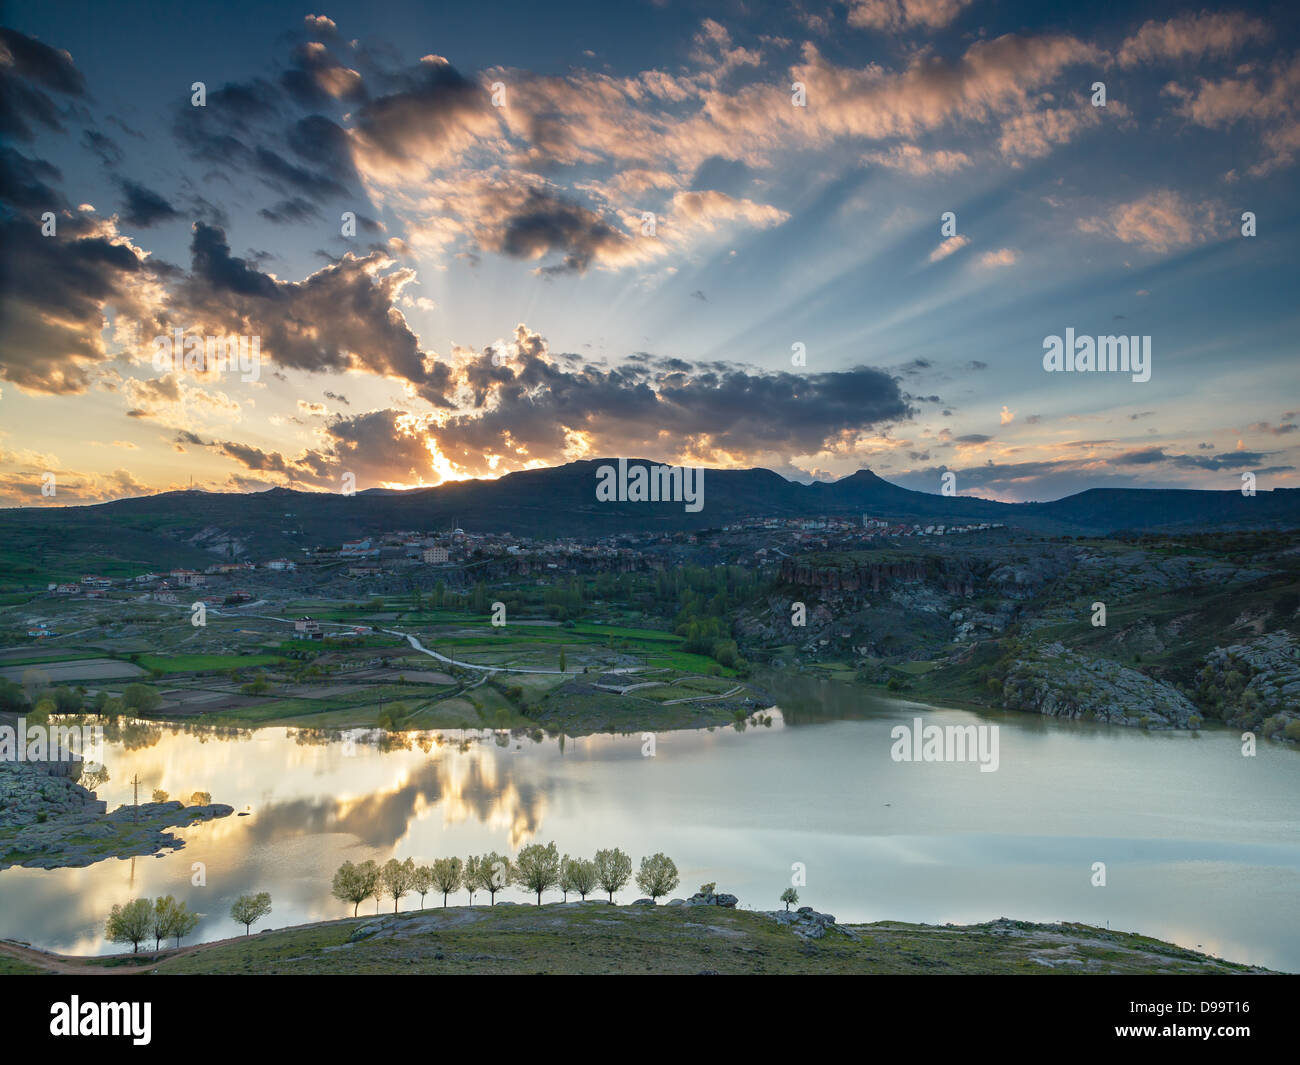 Clouds illuminated by rising sun and reflected in the lake - Stock Image